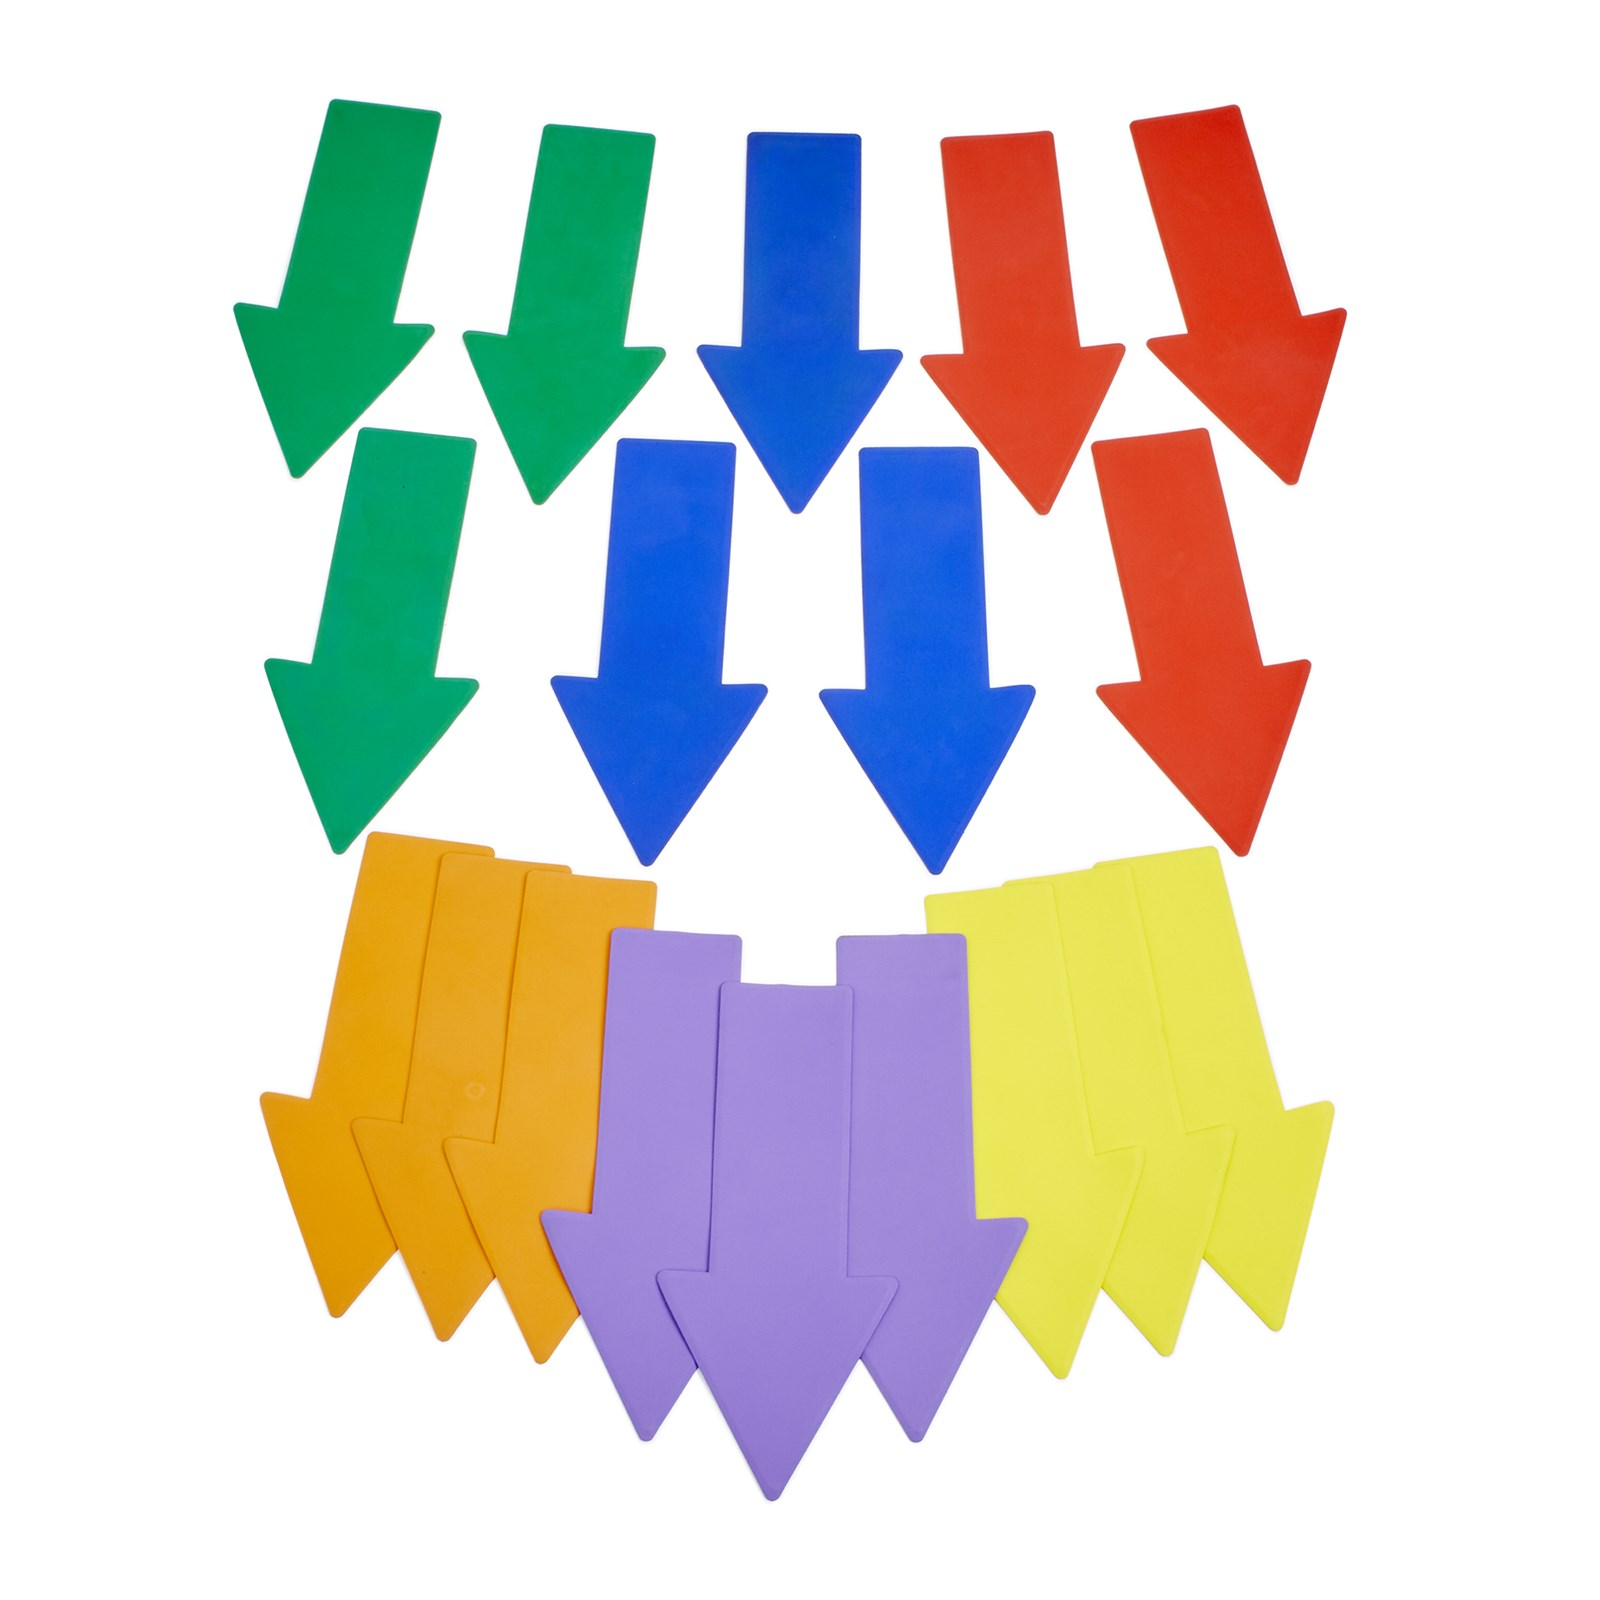 Directional Arrows Pack